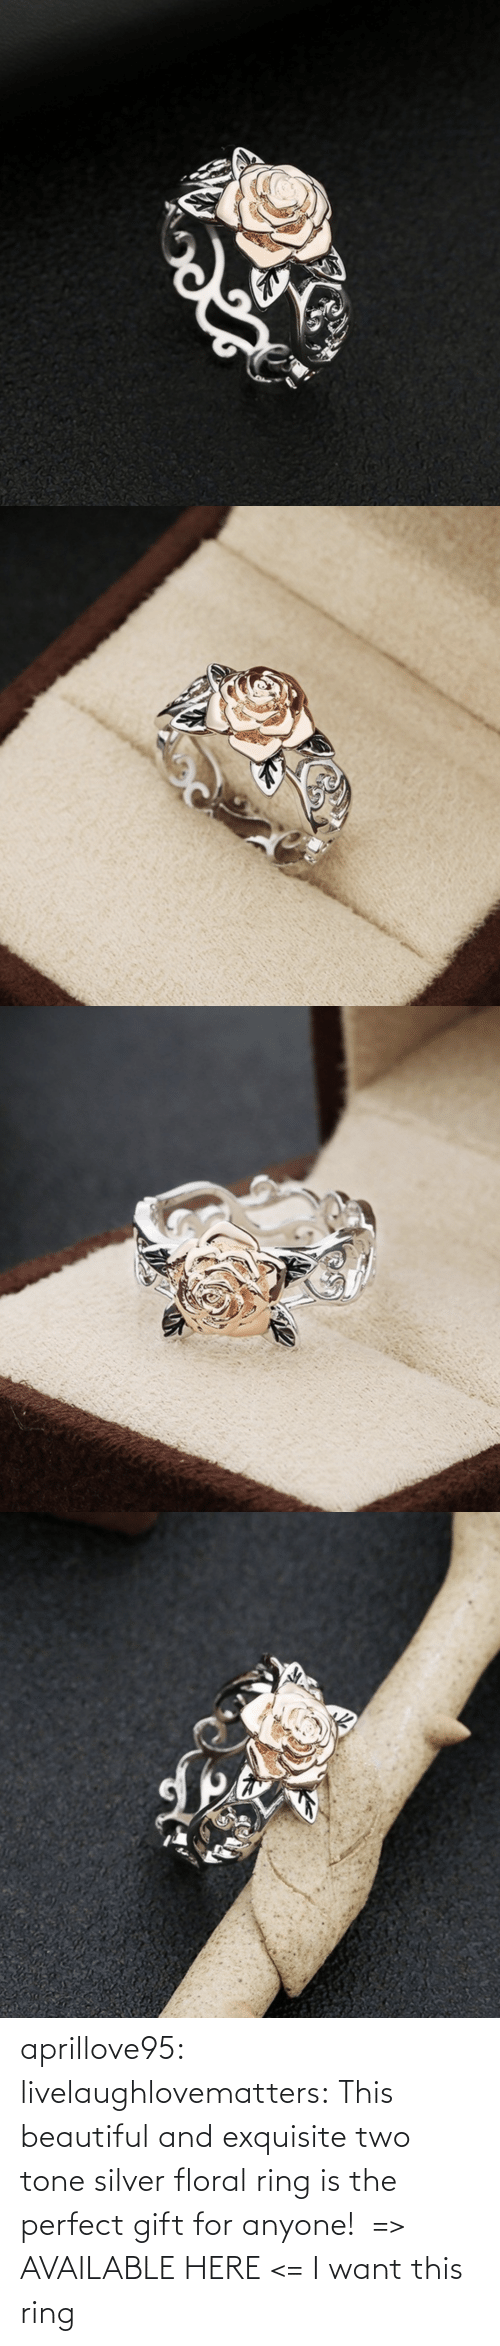 Silver: aprillove95: livelaughlovematters:  This beautiful and exquisite two tone silver floral ring is the perfect gift for anyone!  => AVAILABLE HERE <=    I want this ring